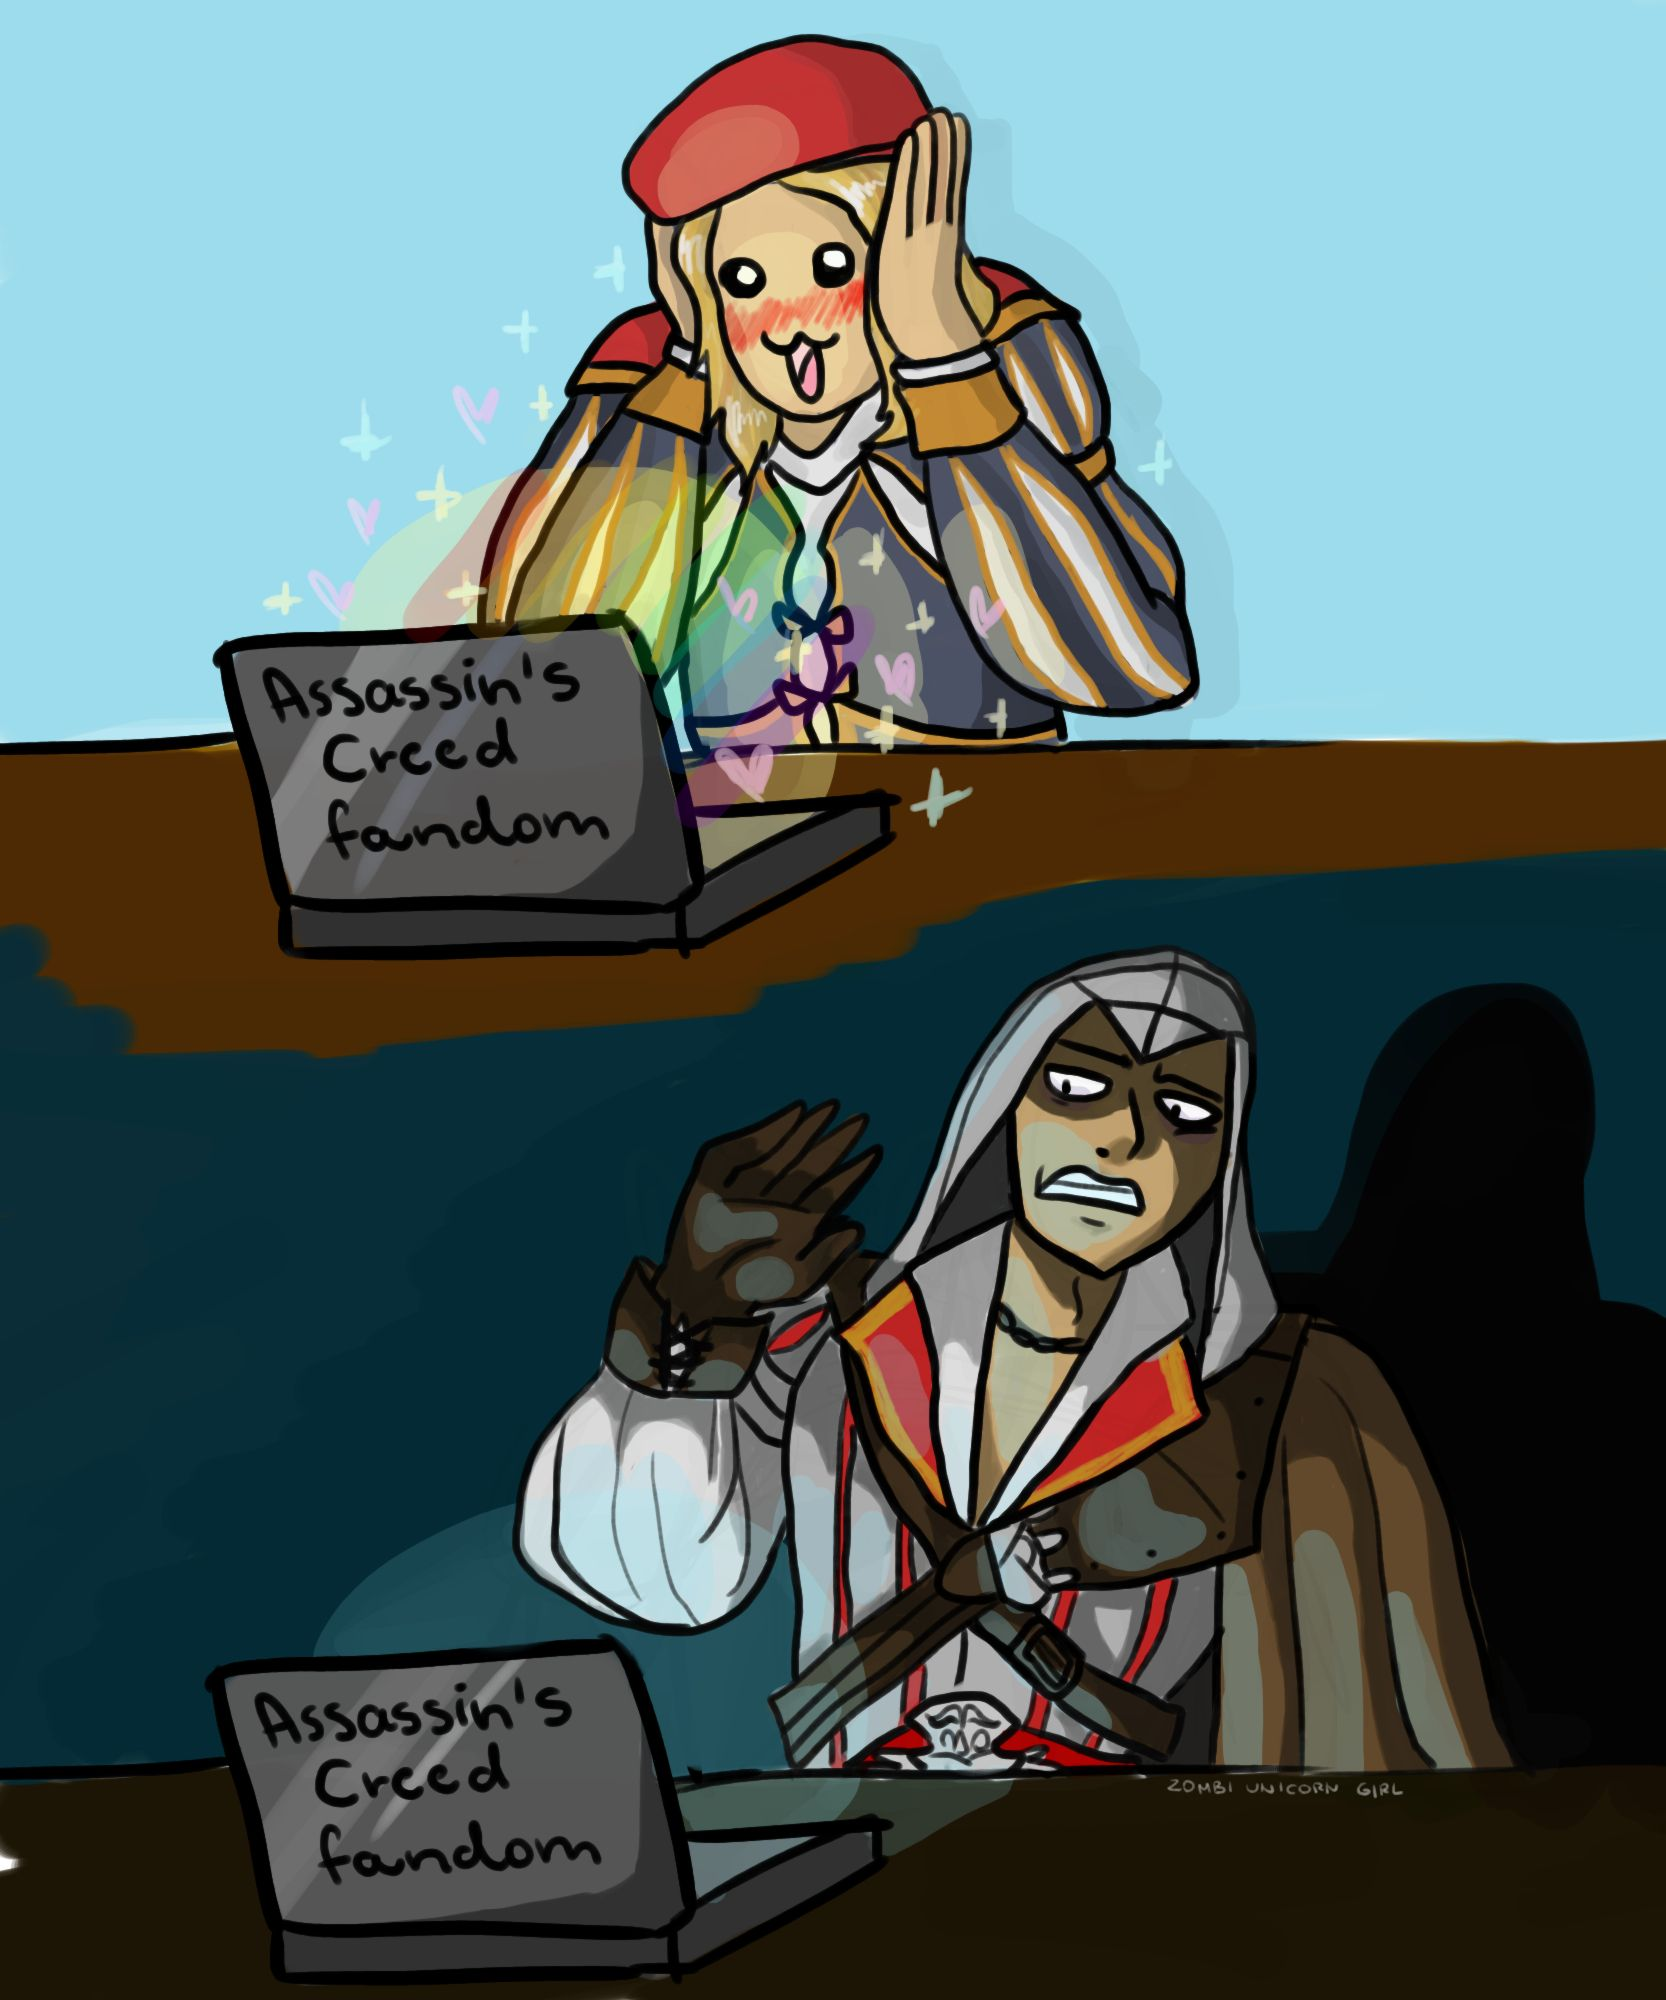 Assassin Creed Fanart Assassins Creed Funny Assassins Creed